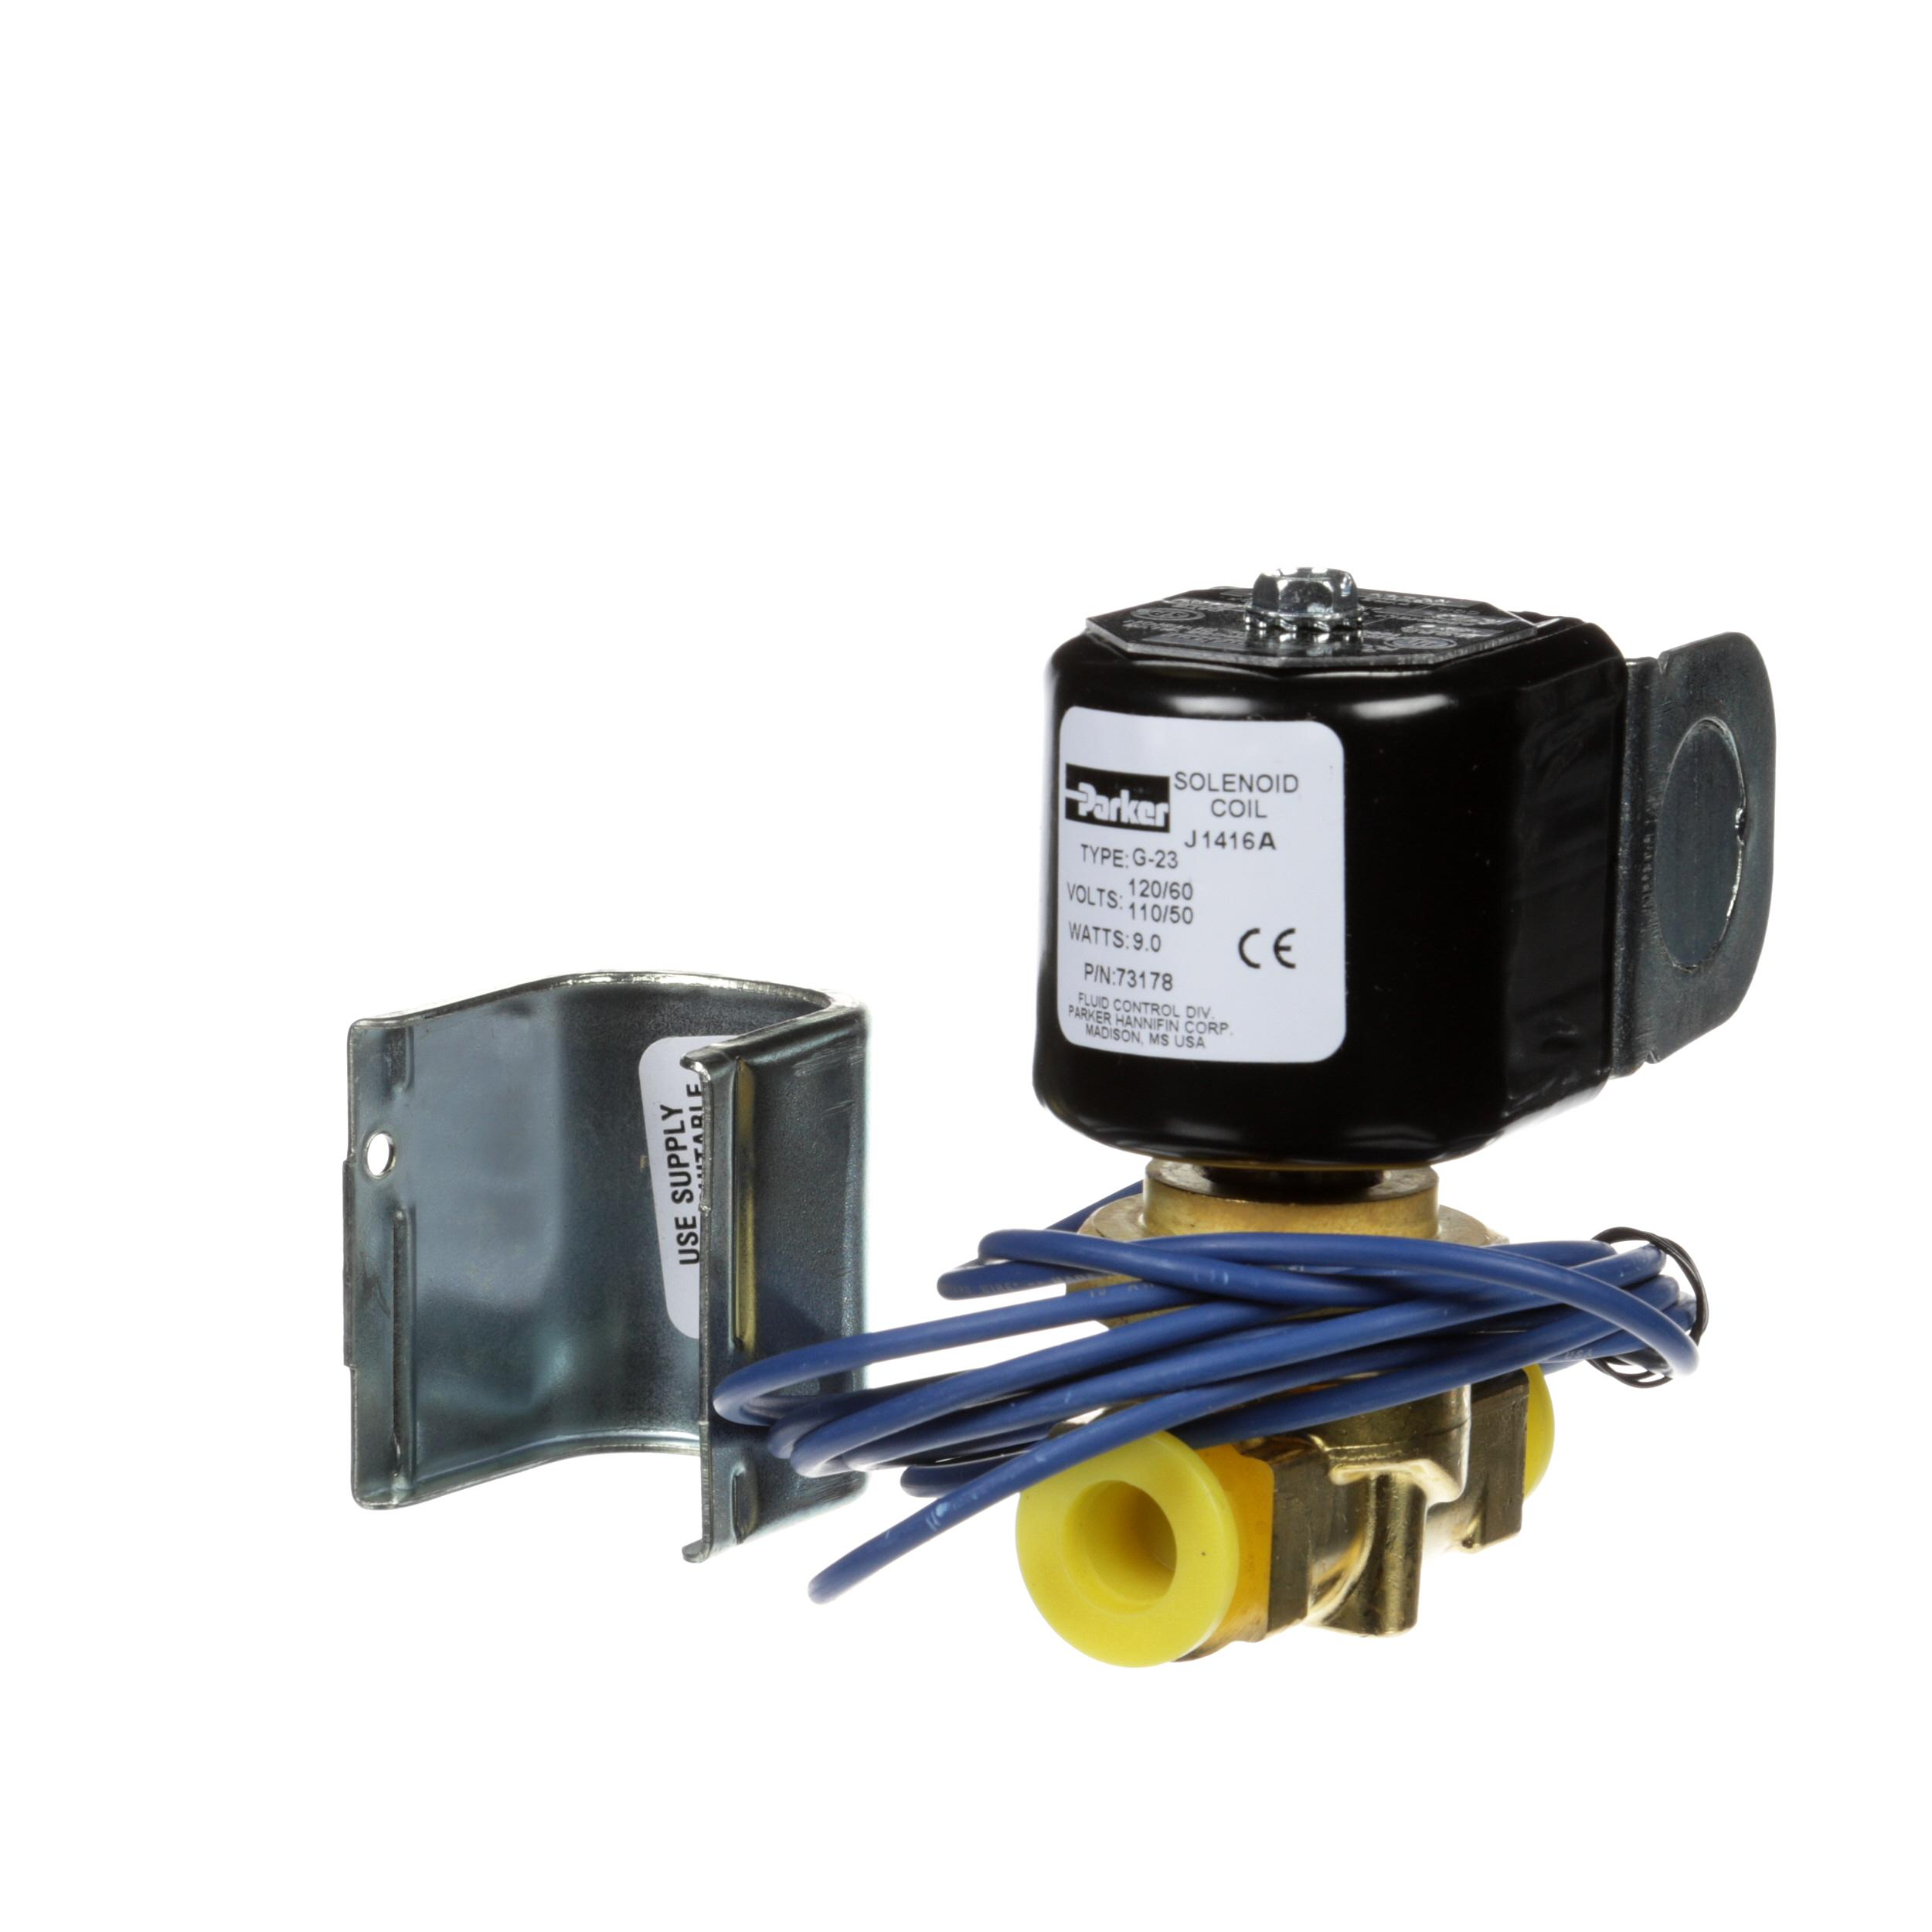 CLEVELAND VALVE;SOLENOID;1/4NPT; 36IN LEADS